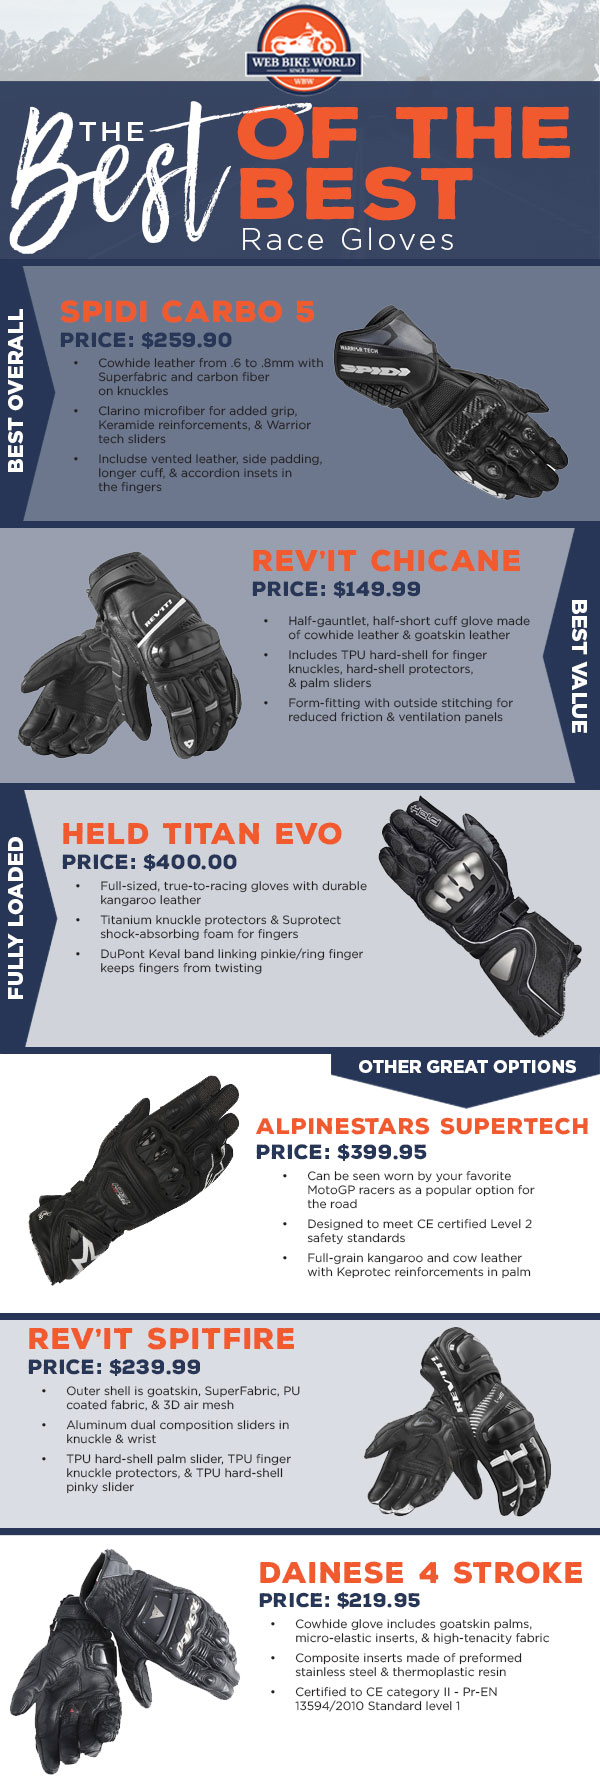 The Best Race Gloves Infographic 2019